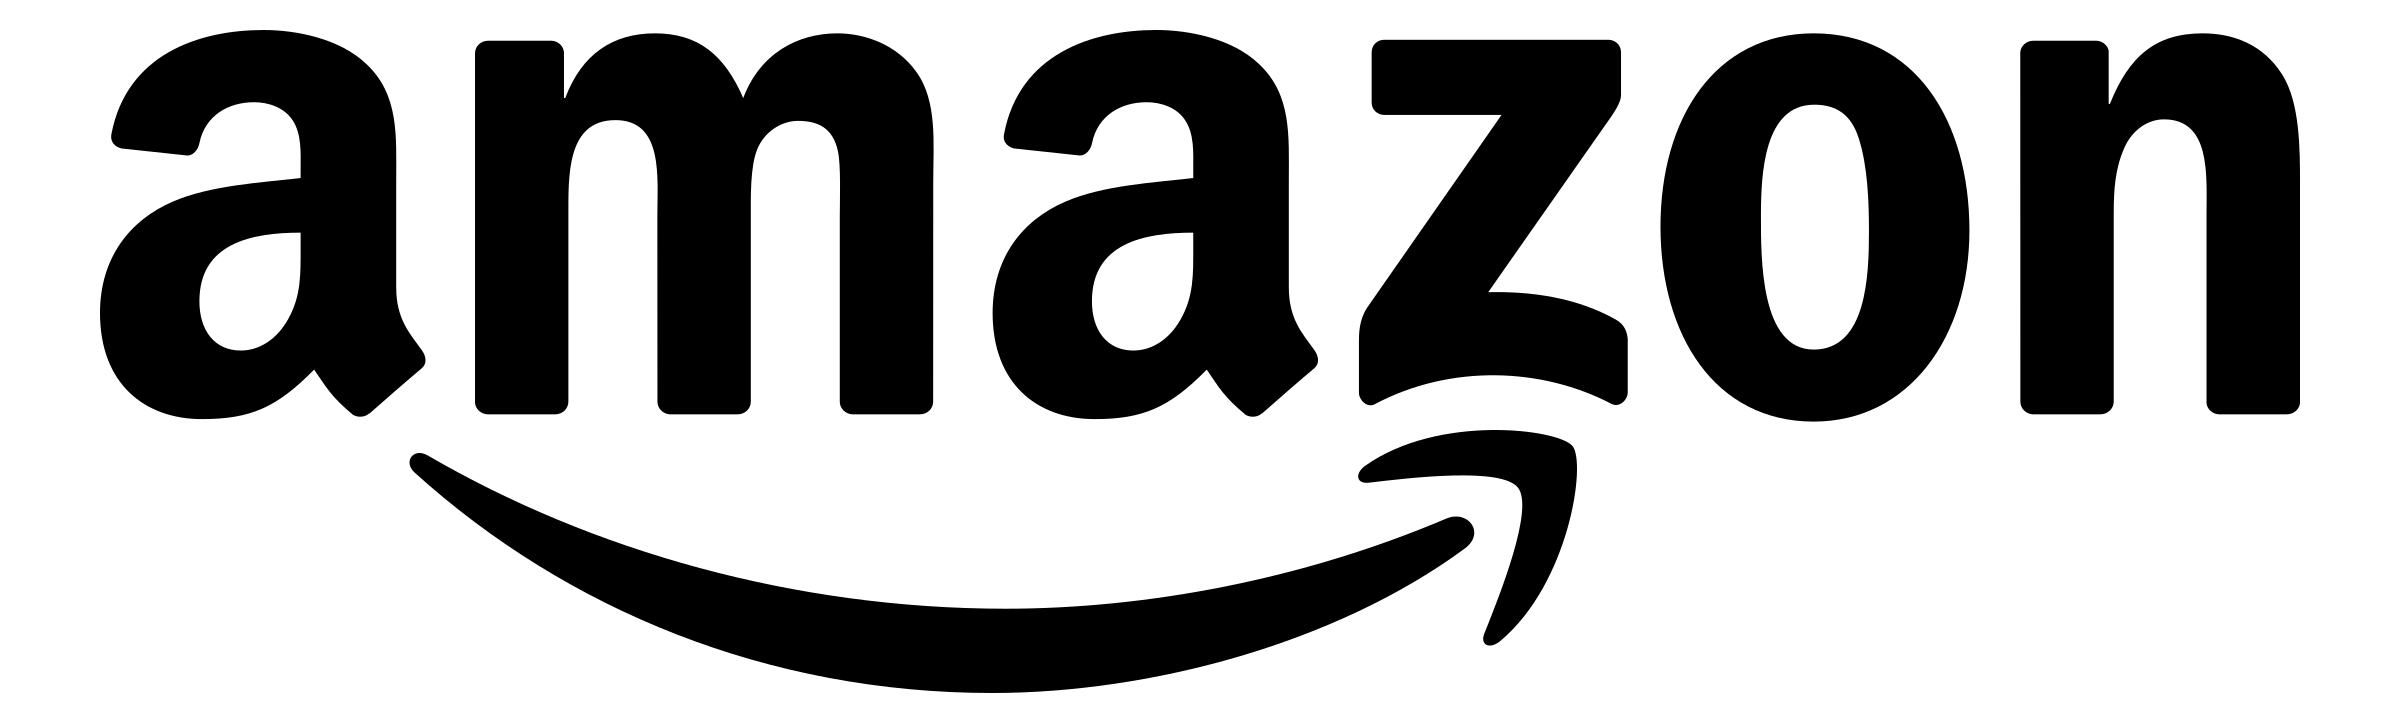 Amazon logo png. Transparent svg vector freebie